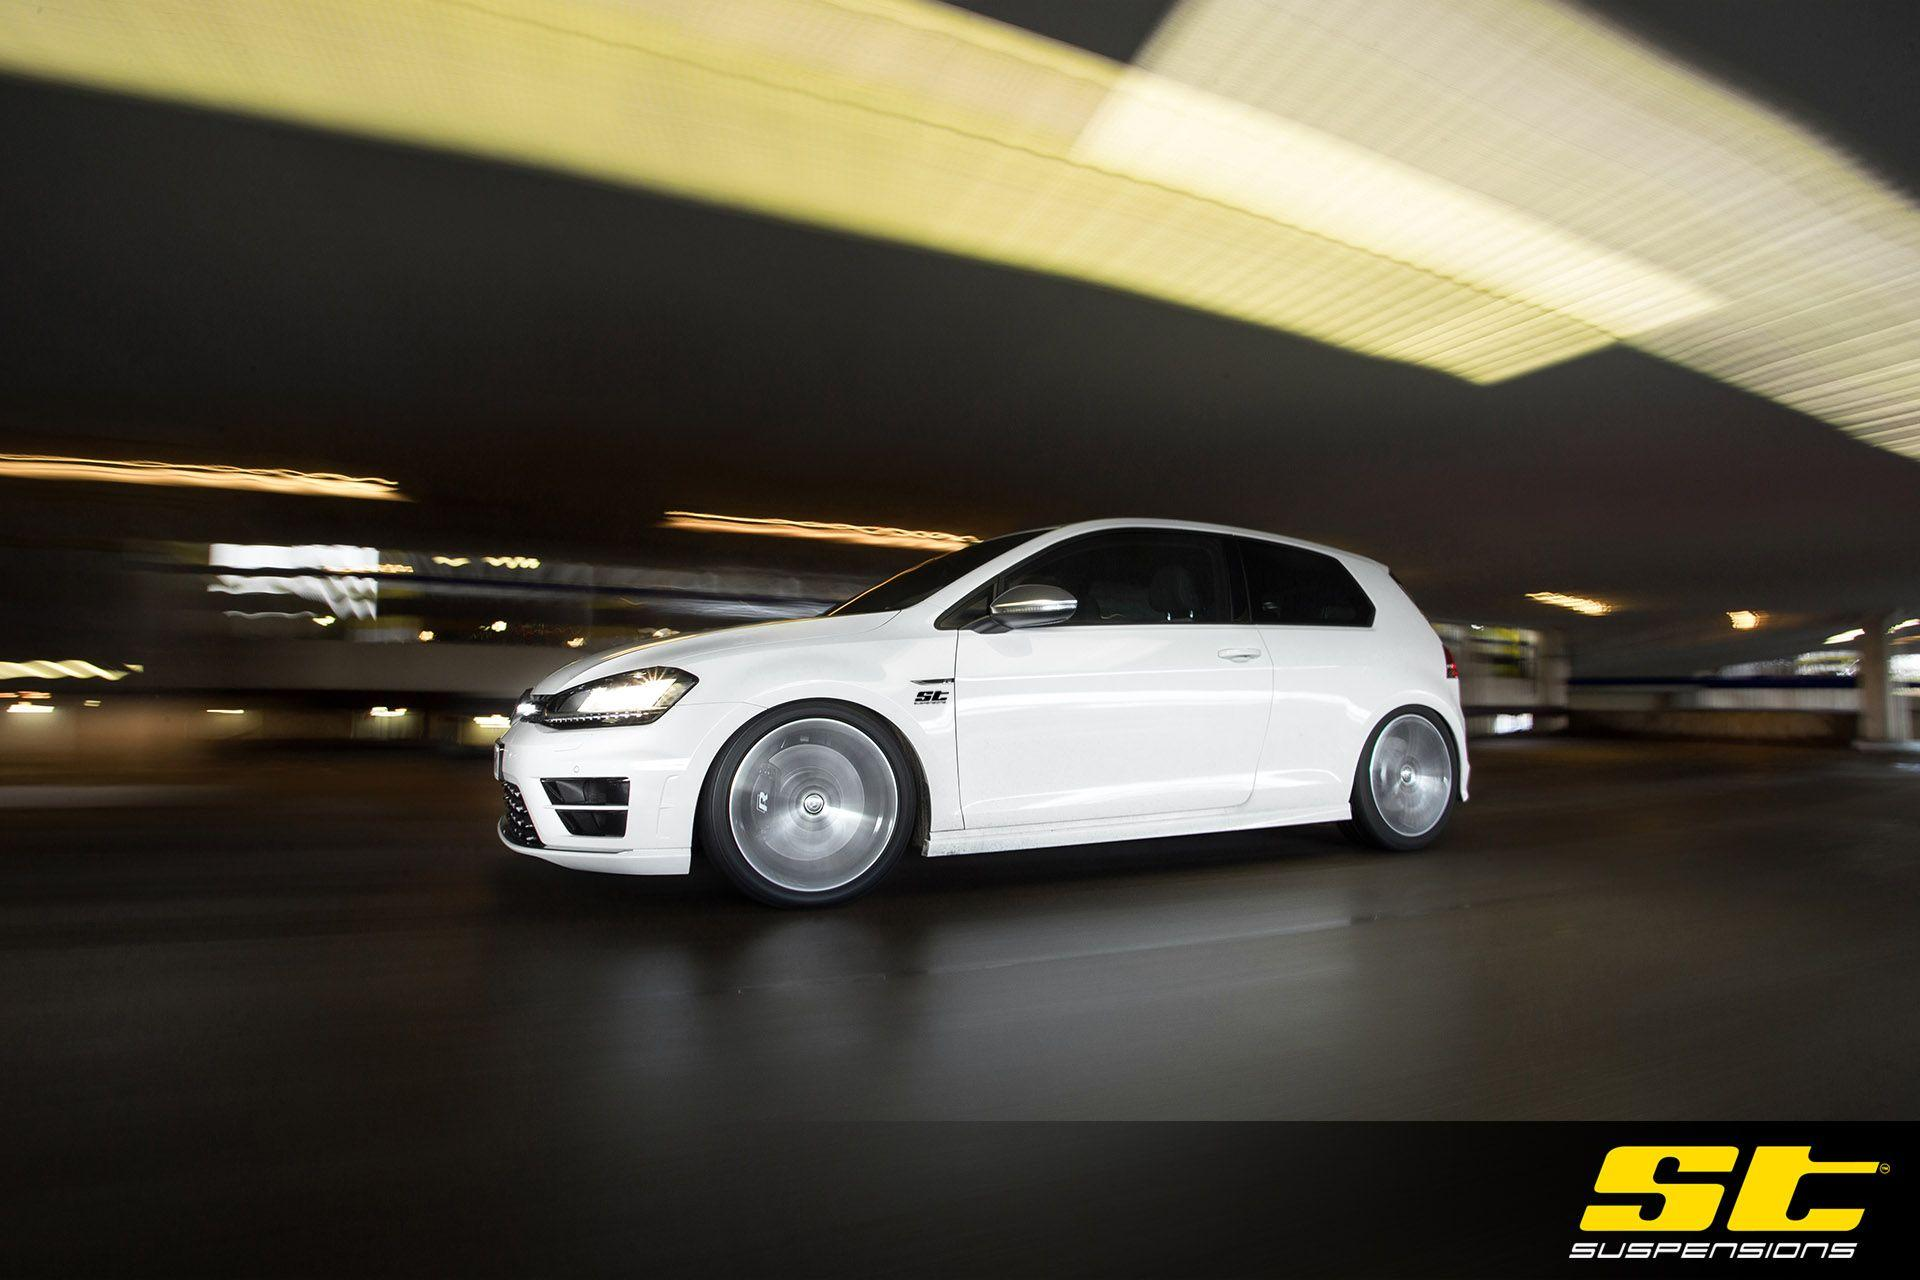 WALLPAPER: ST suspensions MK7 VW Golf R | KW Automotive Blog